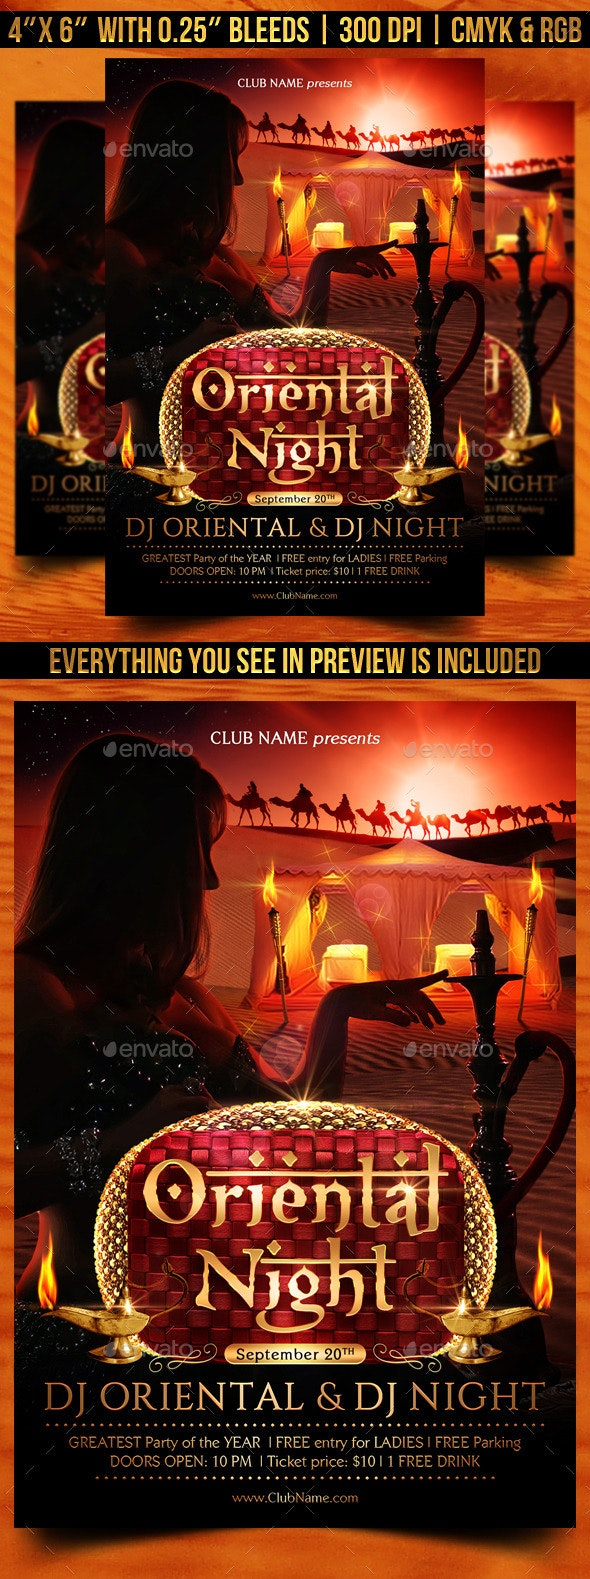 Oriental Night Flyer Template - Clubs & Parties Events